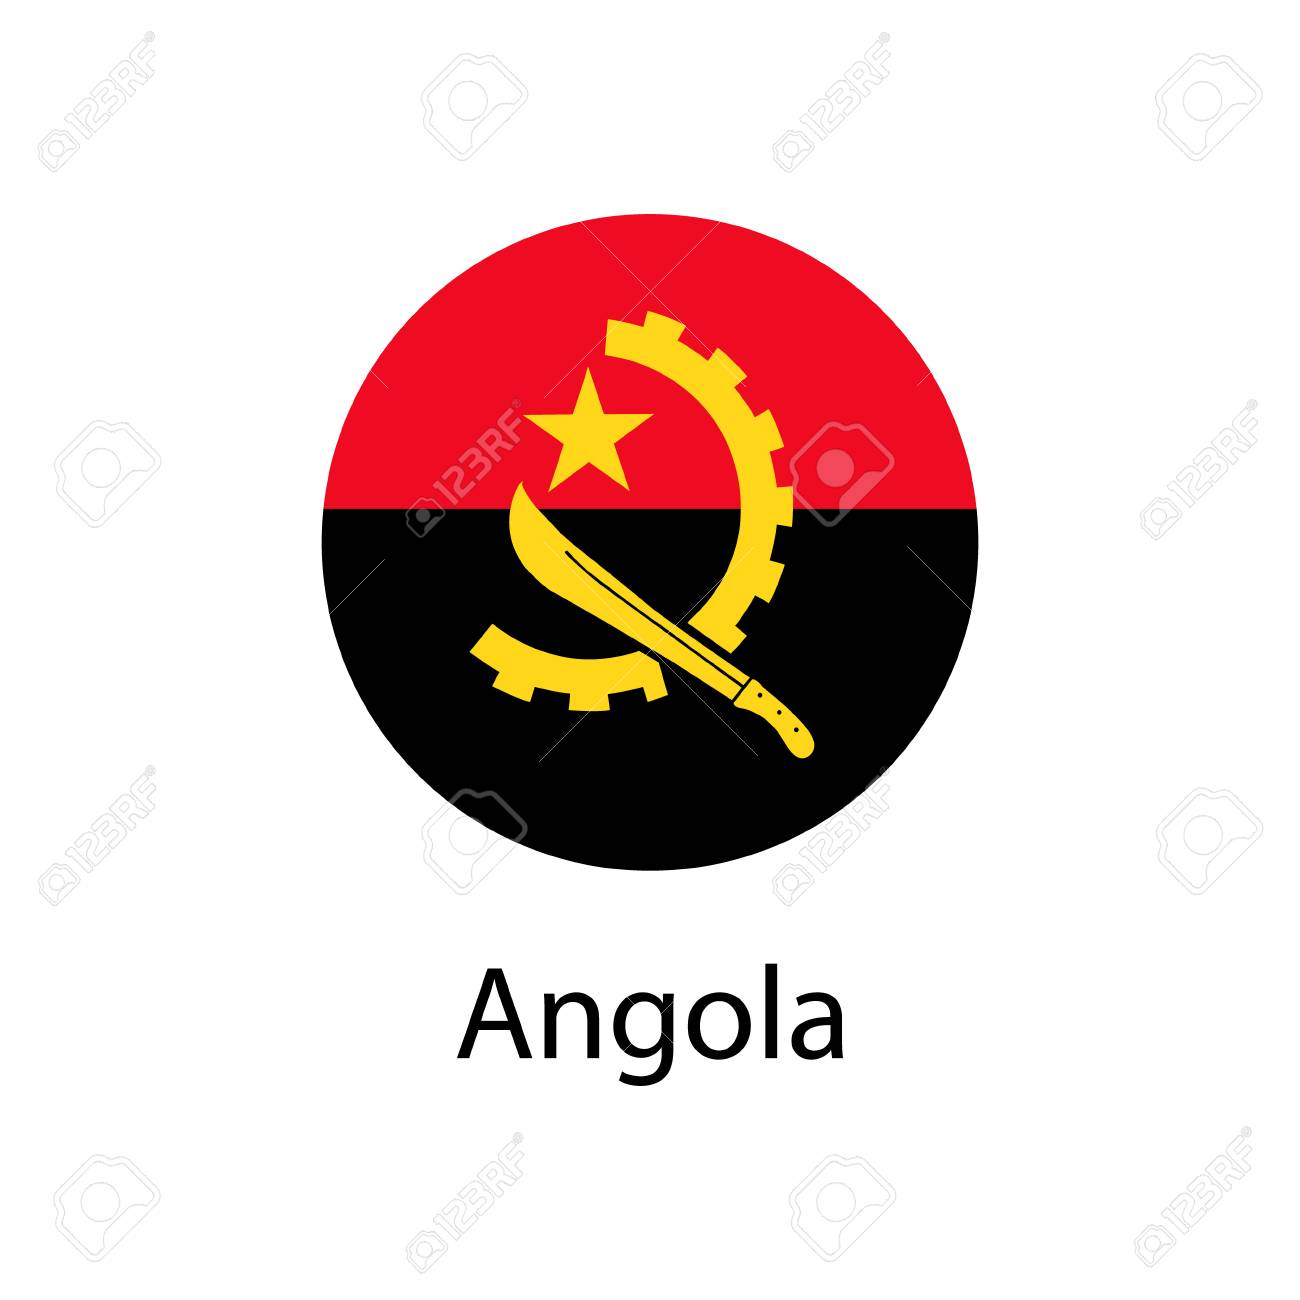 Workshop Foreman for Angola | Find all the Relevant International ...